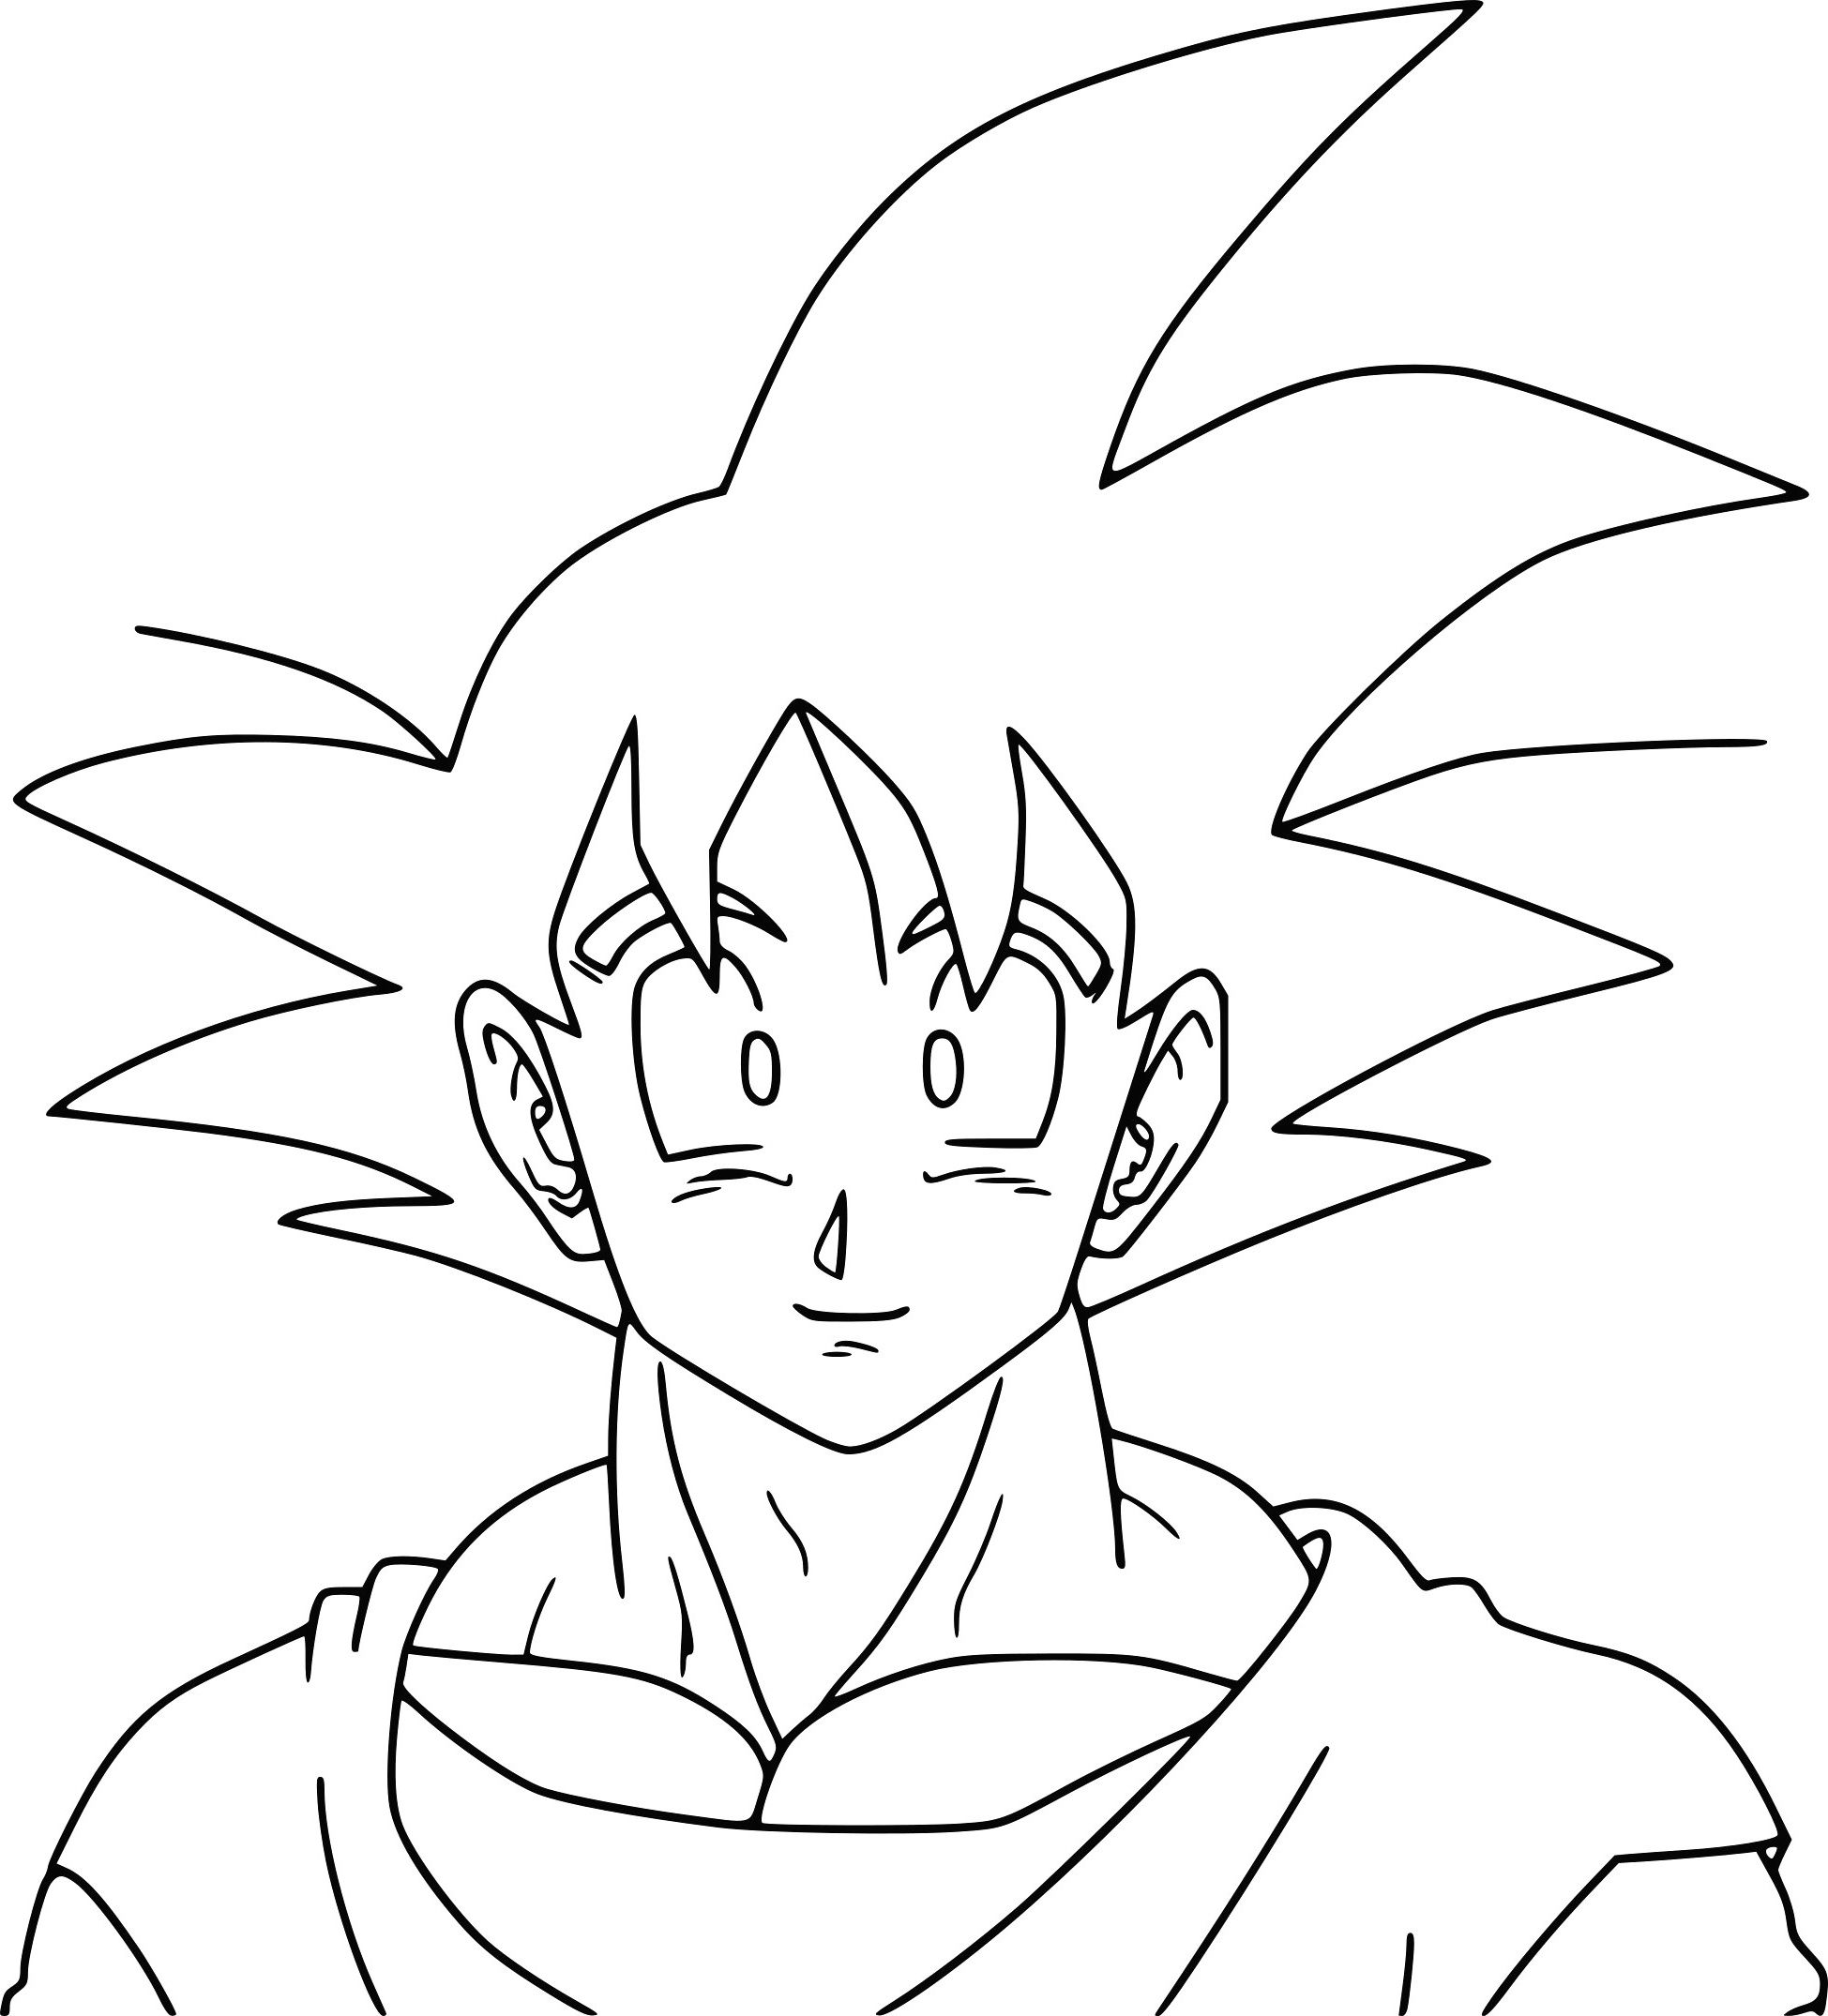 Facile Dragon Ball Broly Super Sayian Legendaire Coloriage Dragon